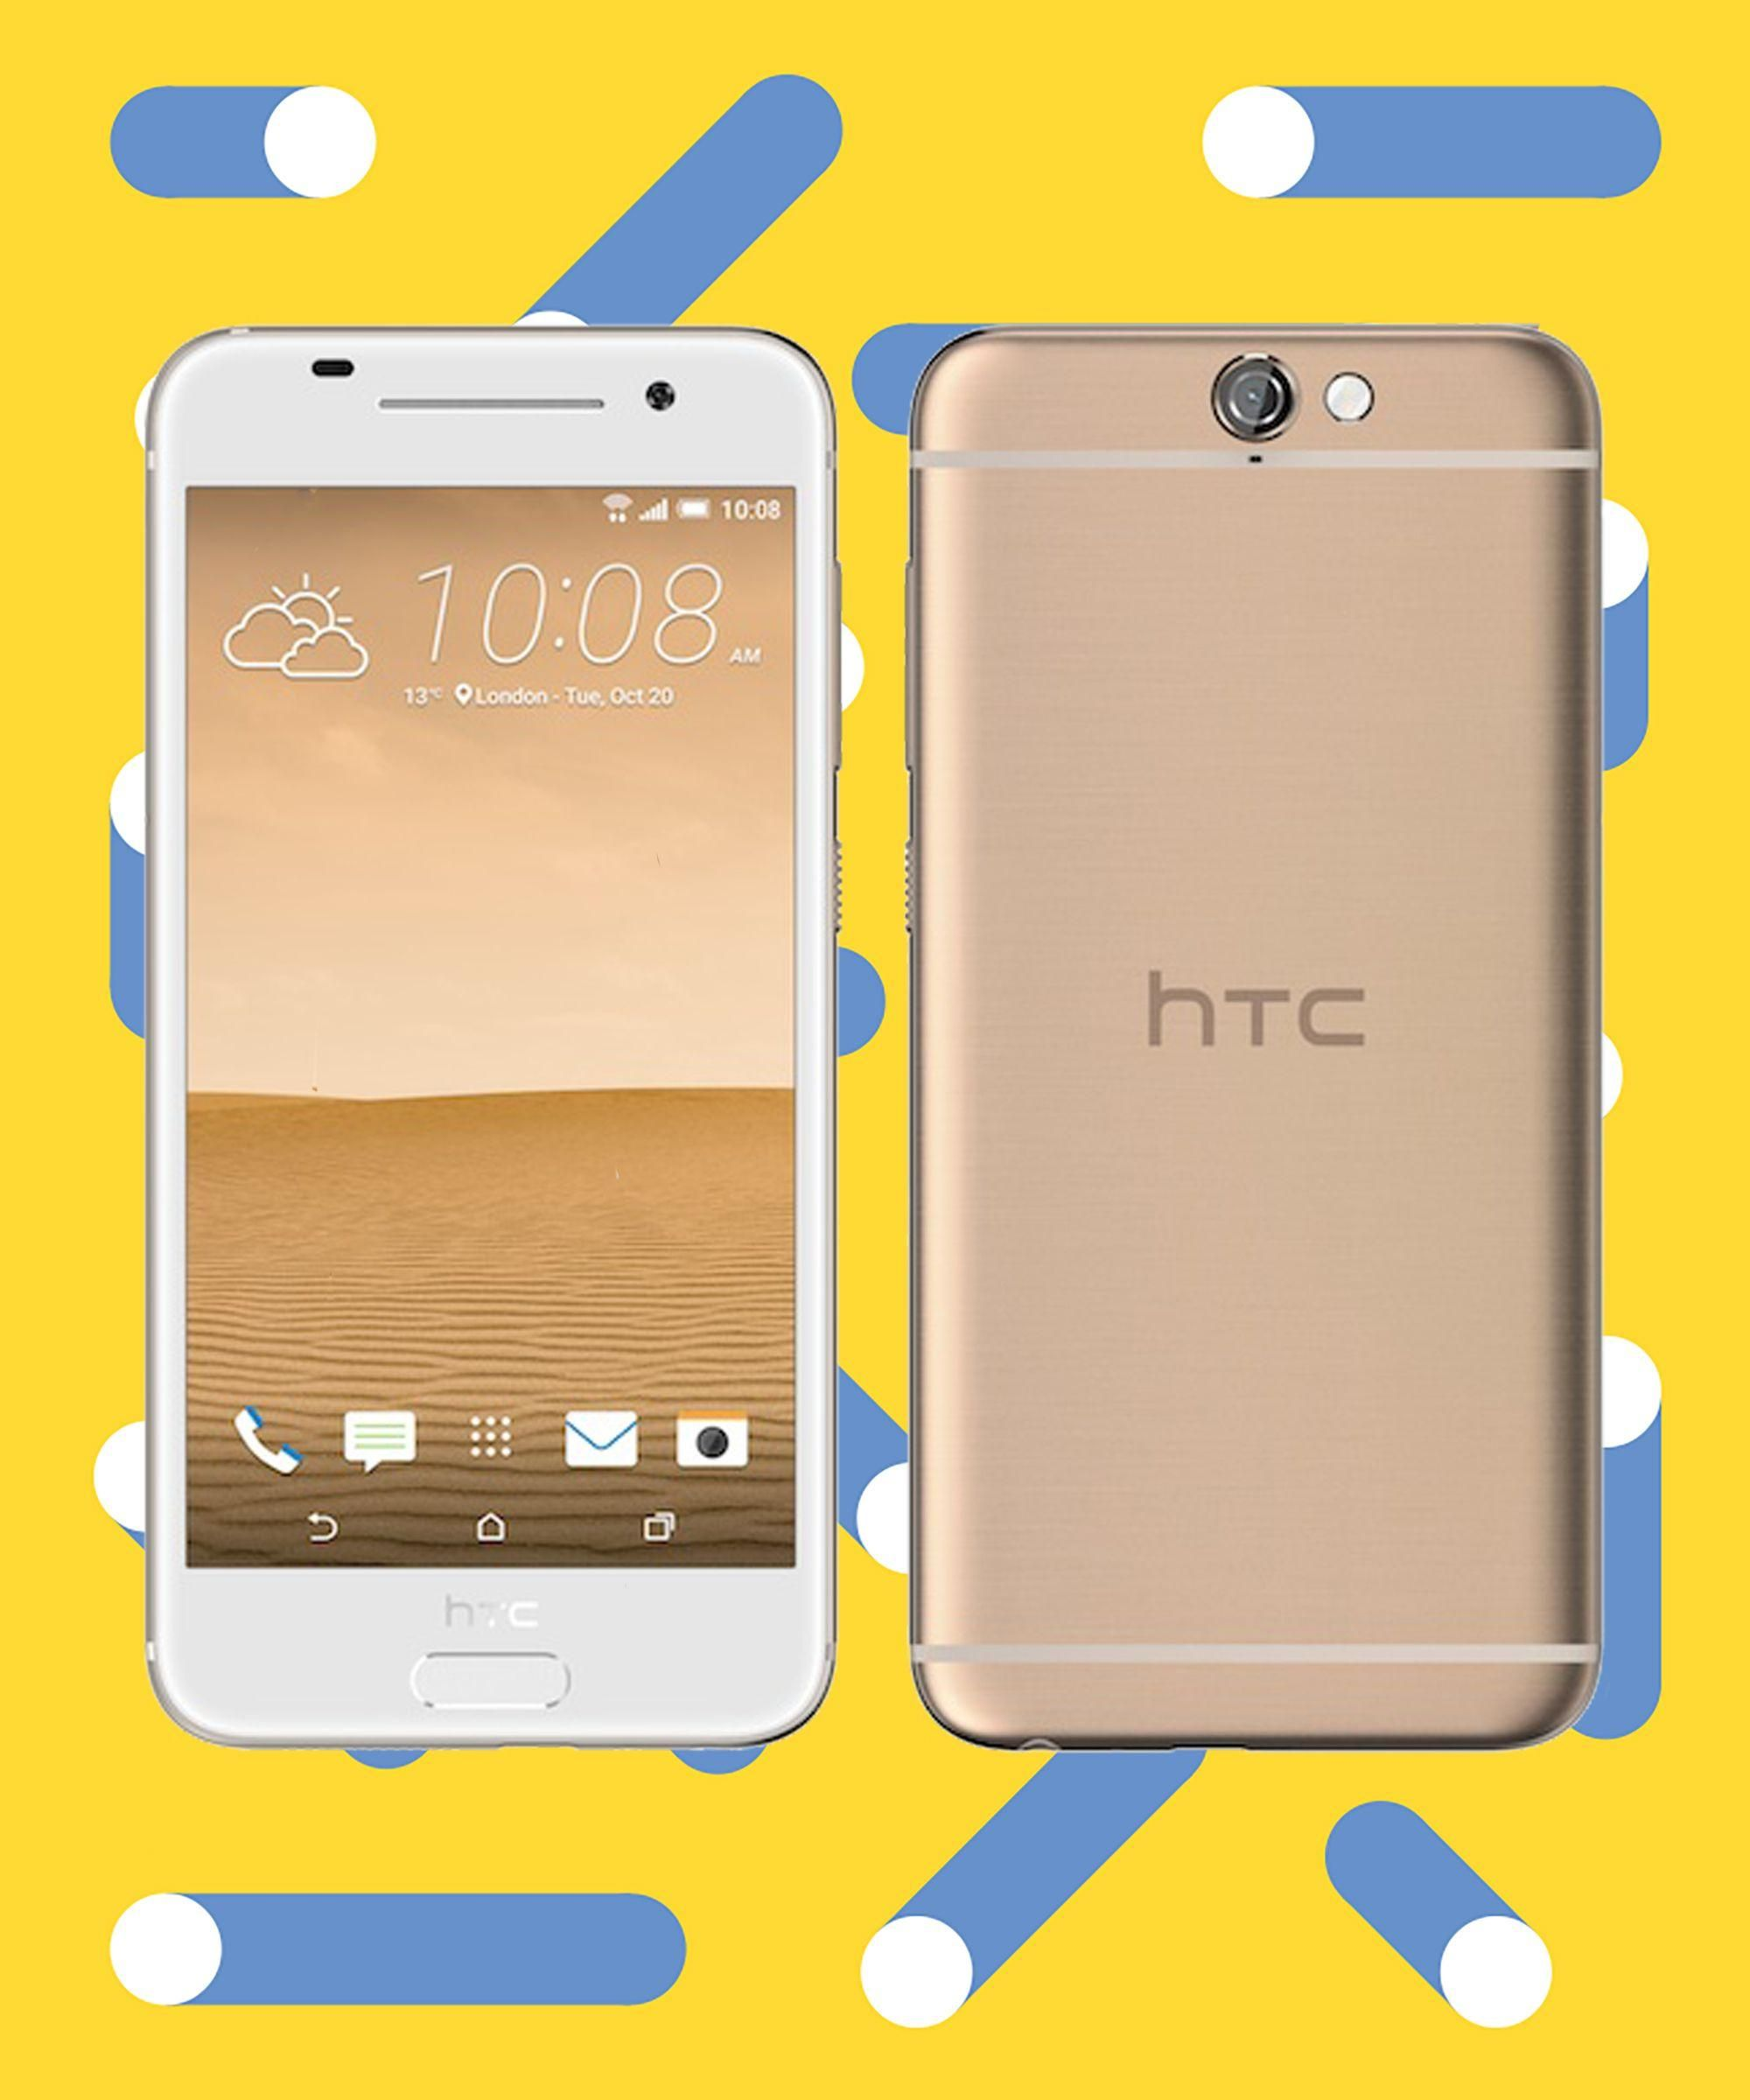 The HTC One A9